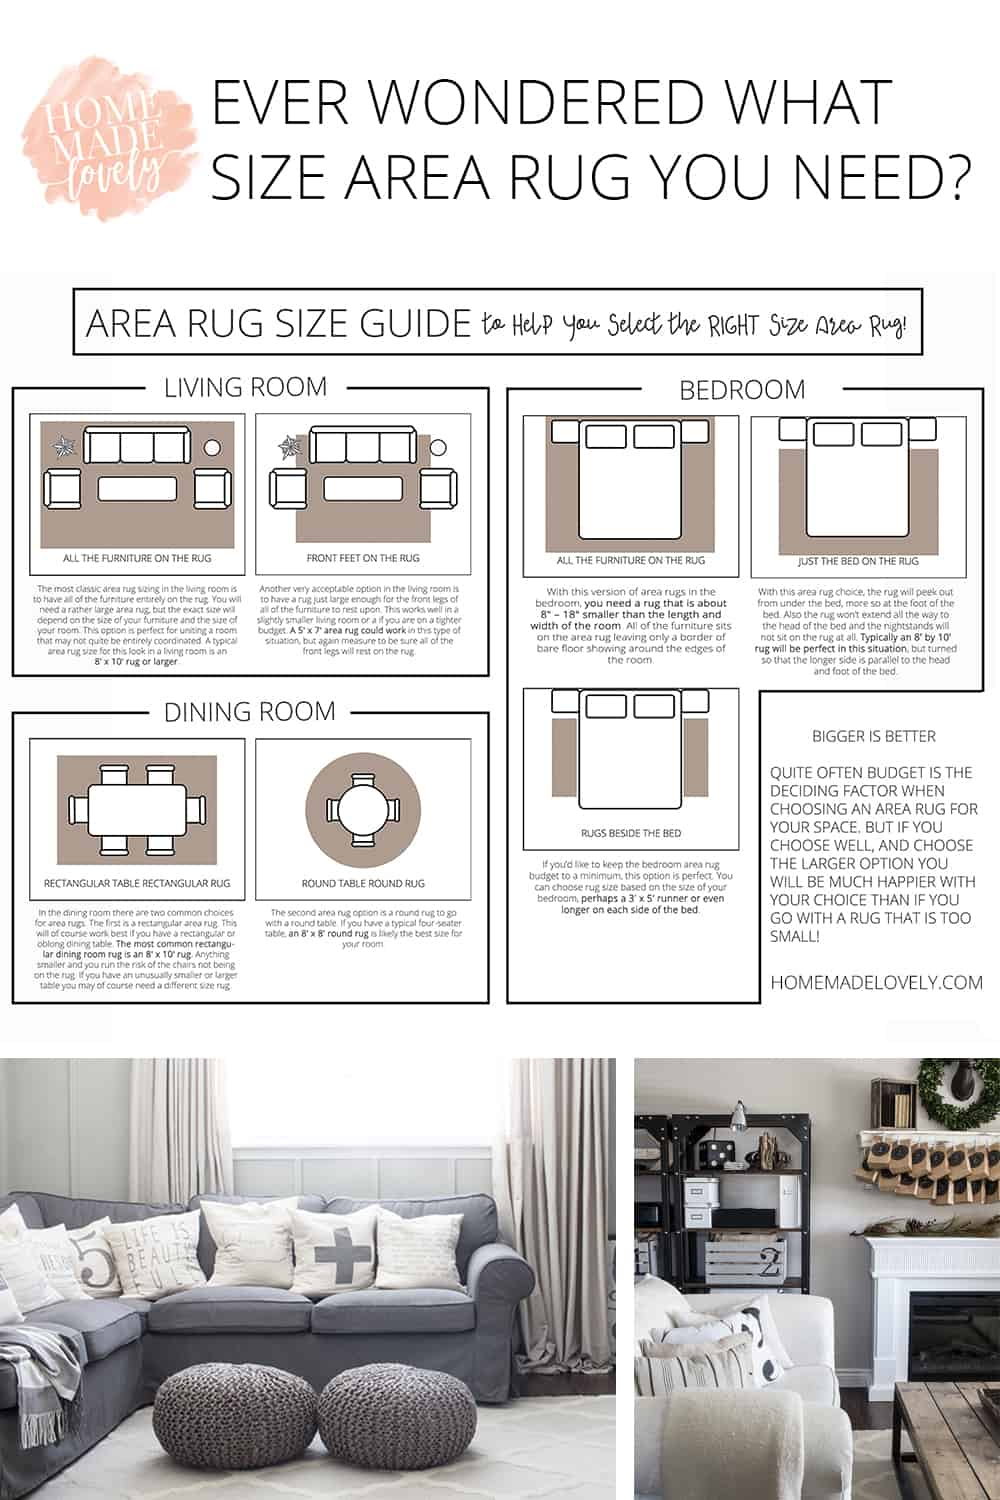 how to choose rug size for living room layout ideas long area guide help you select the right